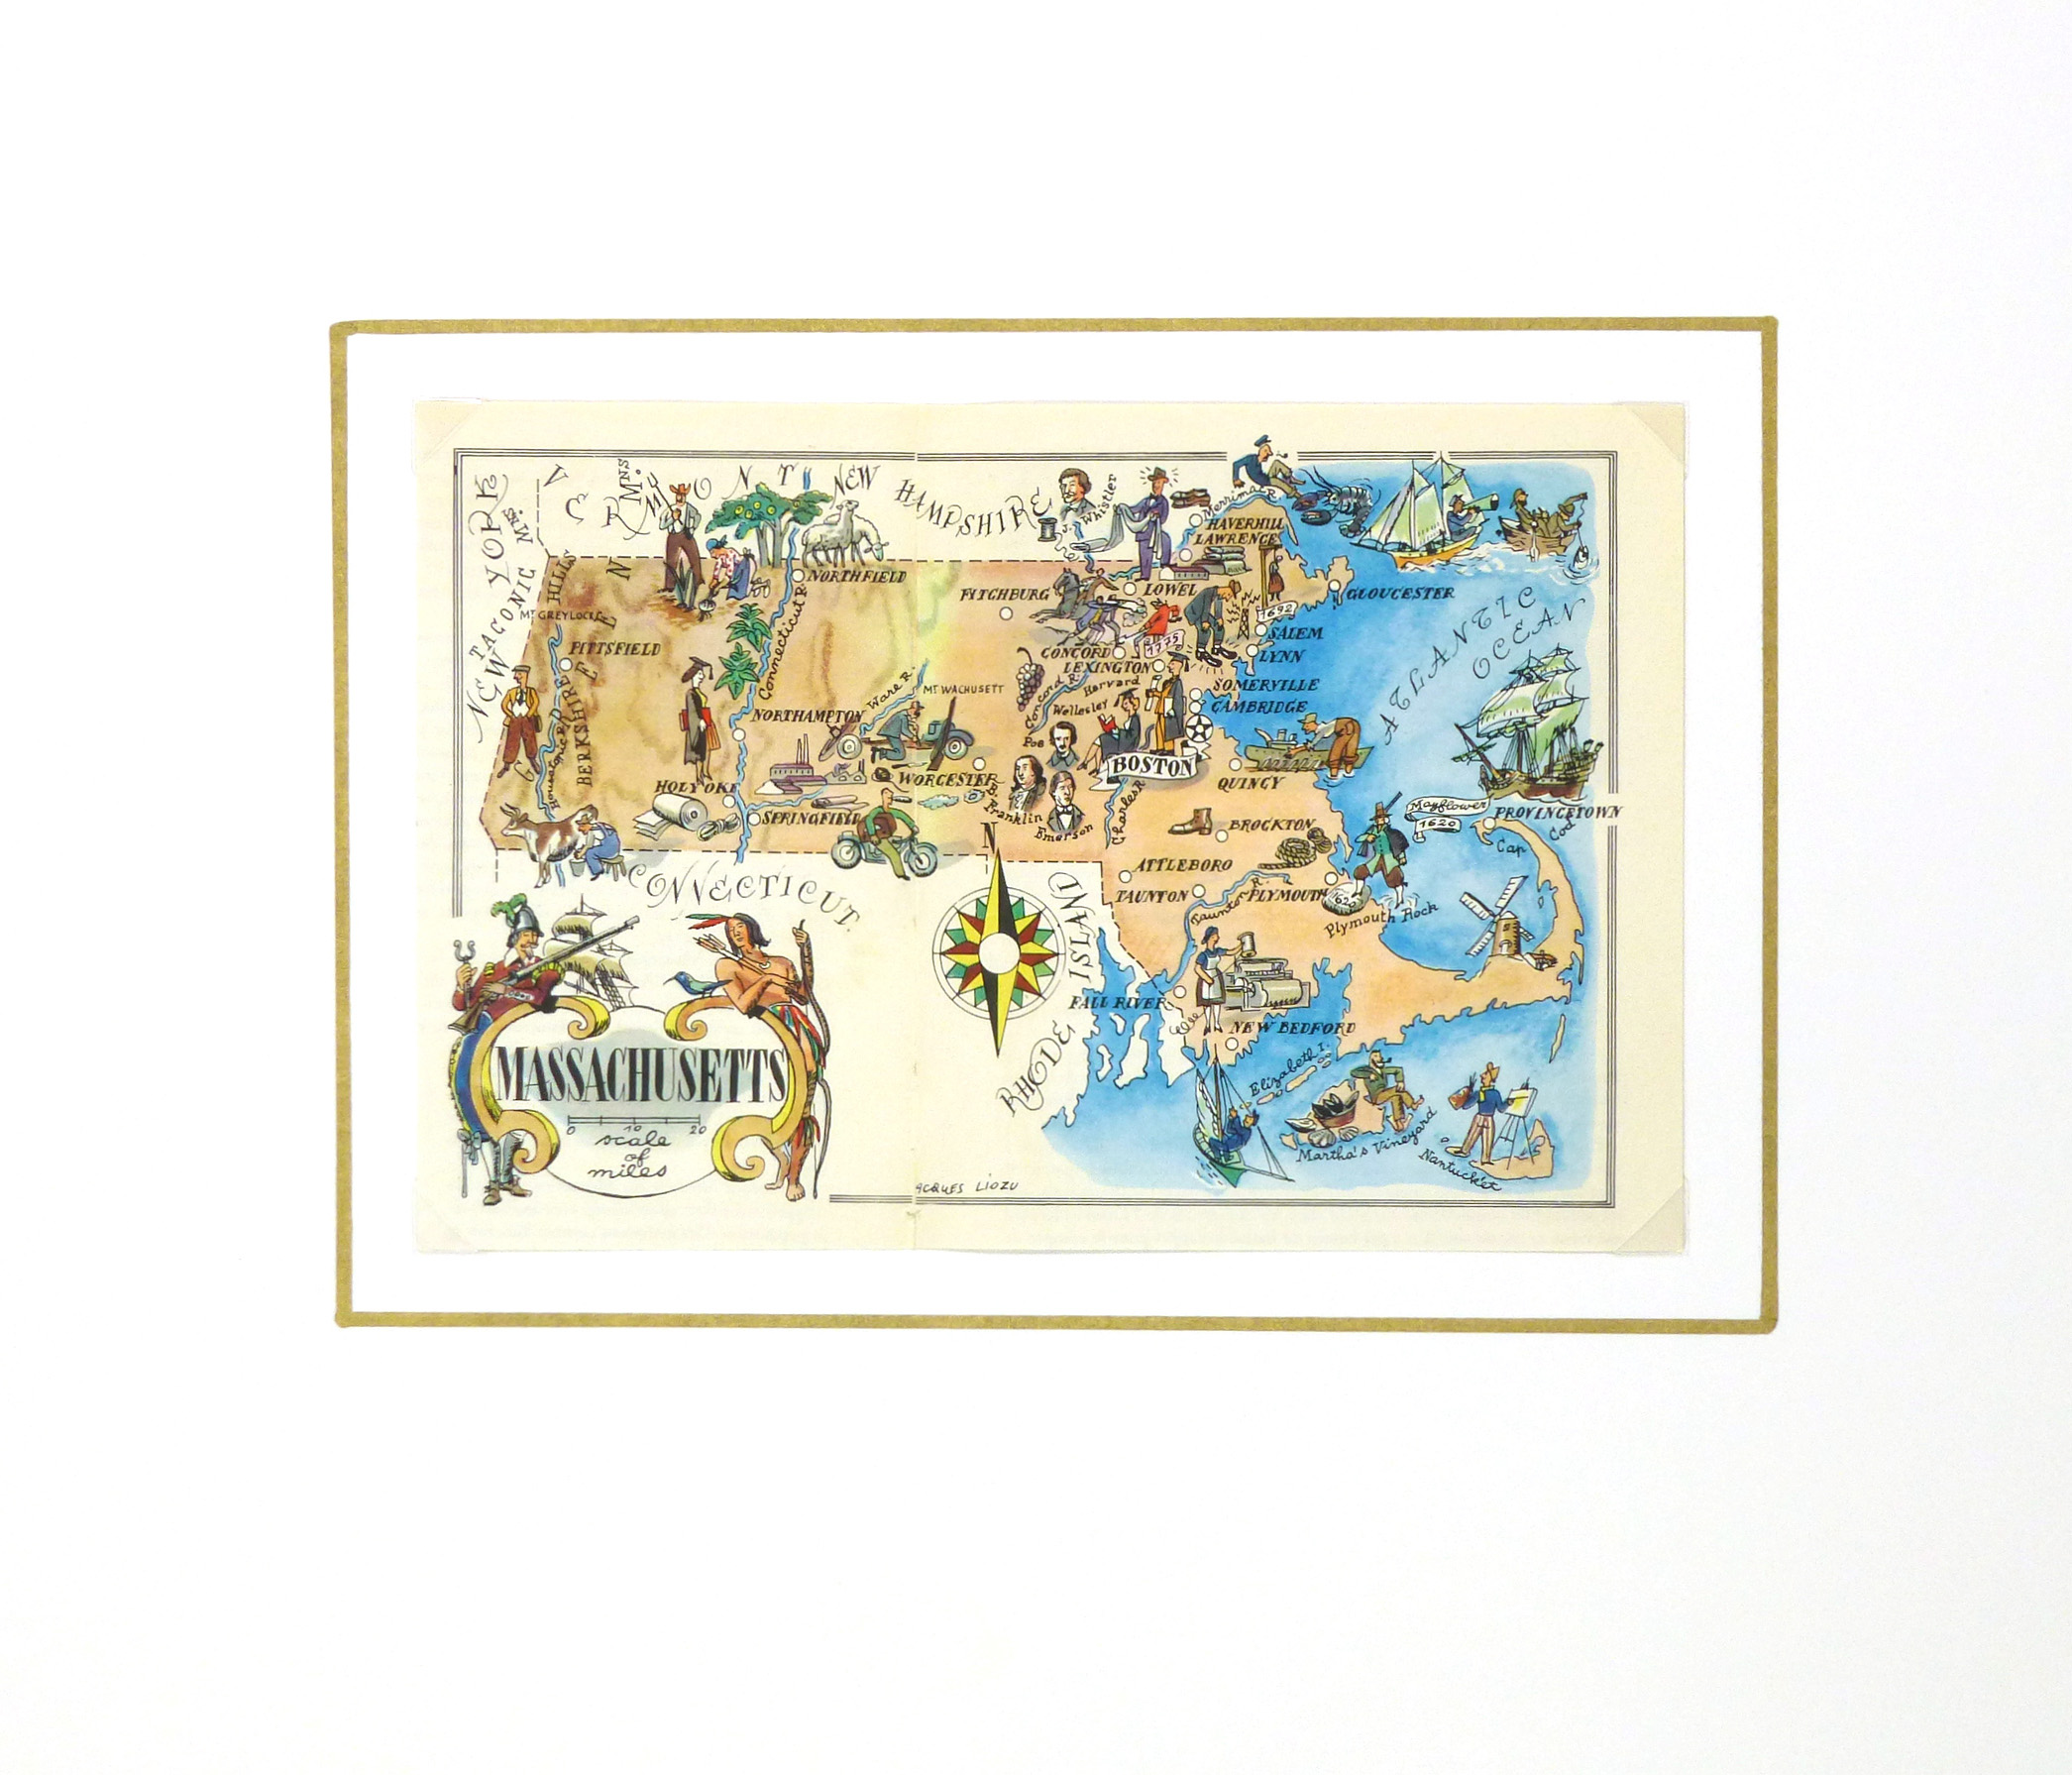 Massachusetts Pictorial Map, 1946-matted-6269K